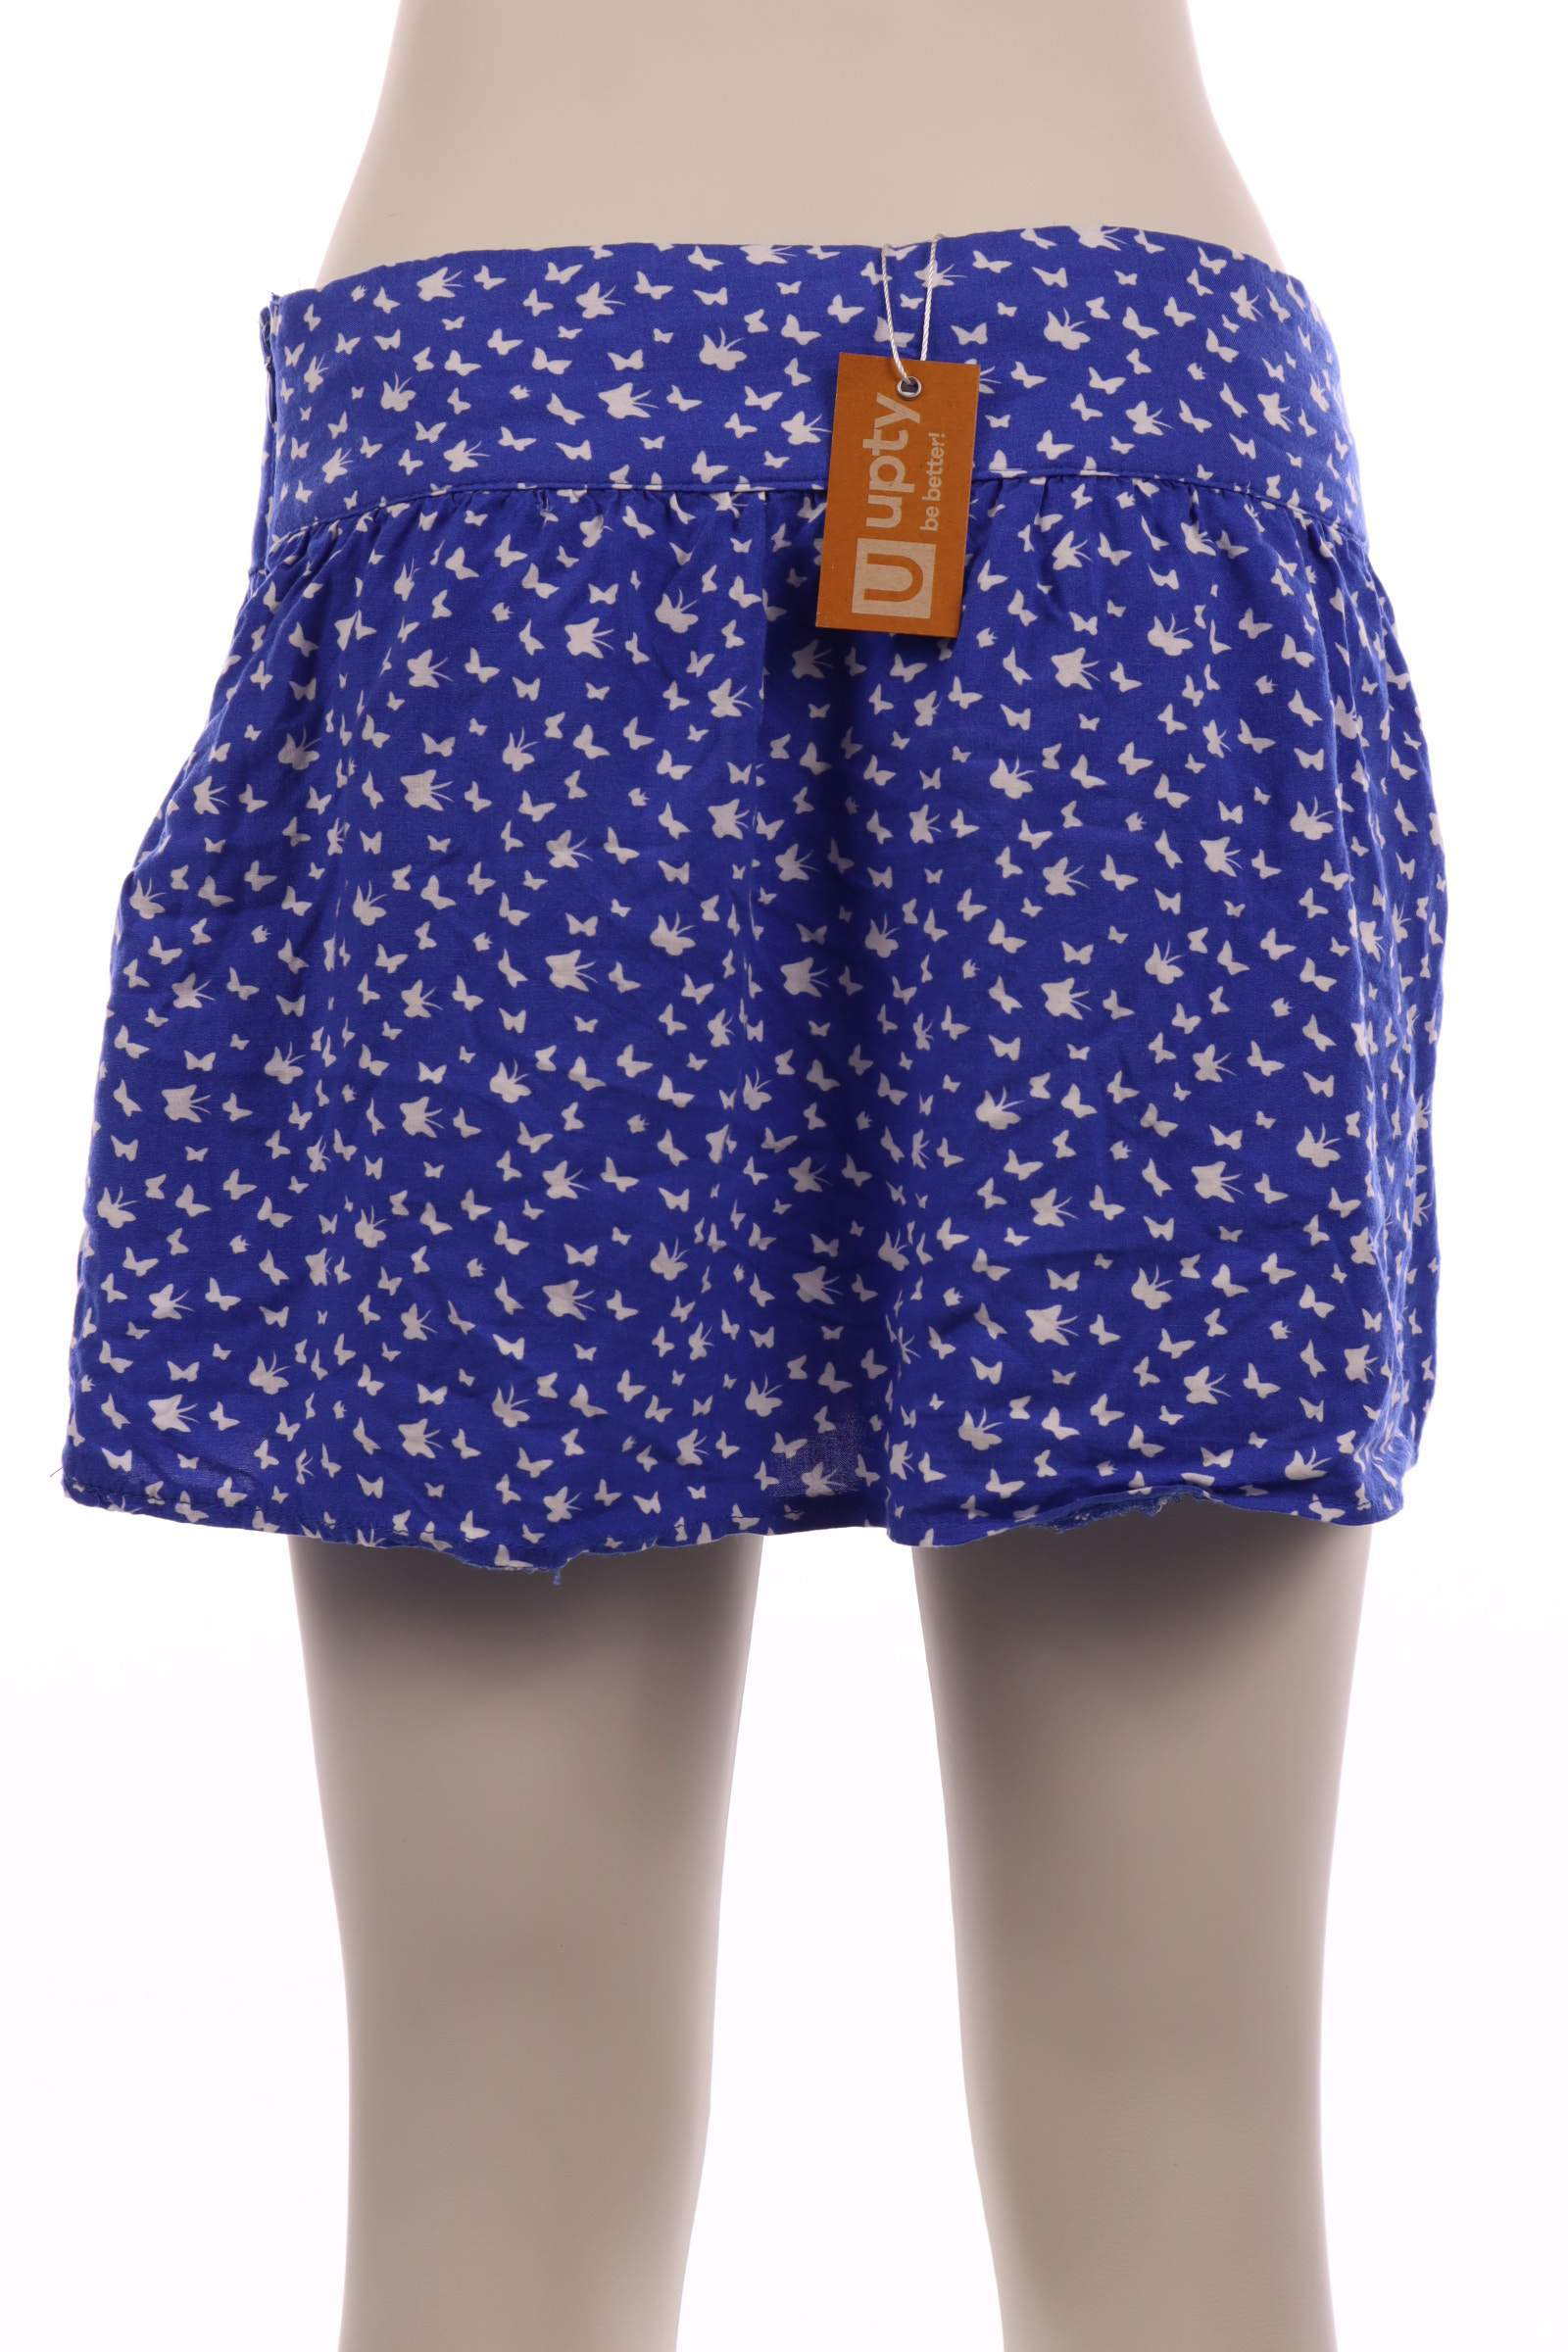 Fishbone Blue Skirt - upty.store